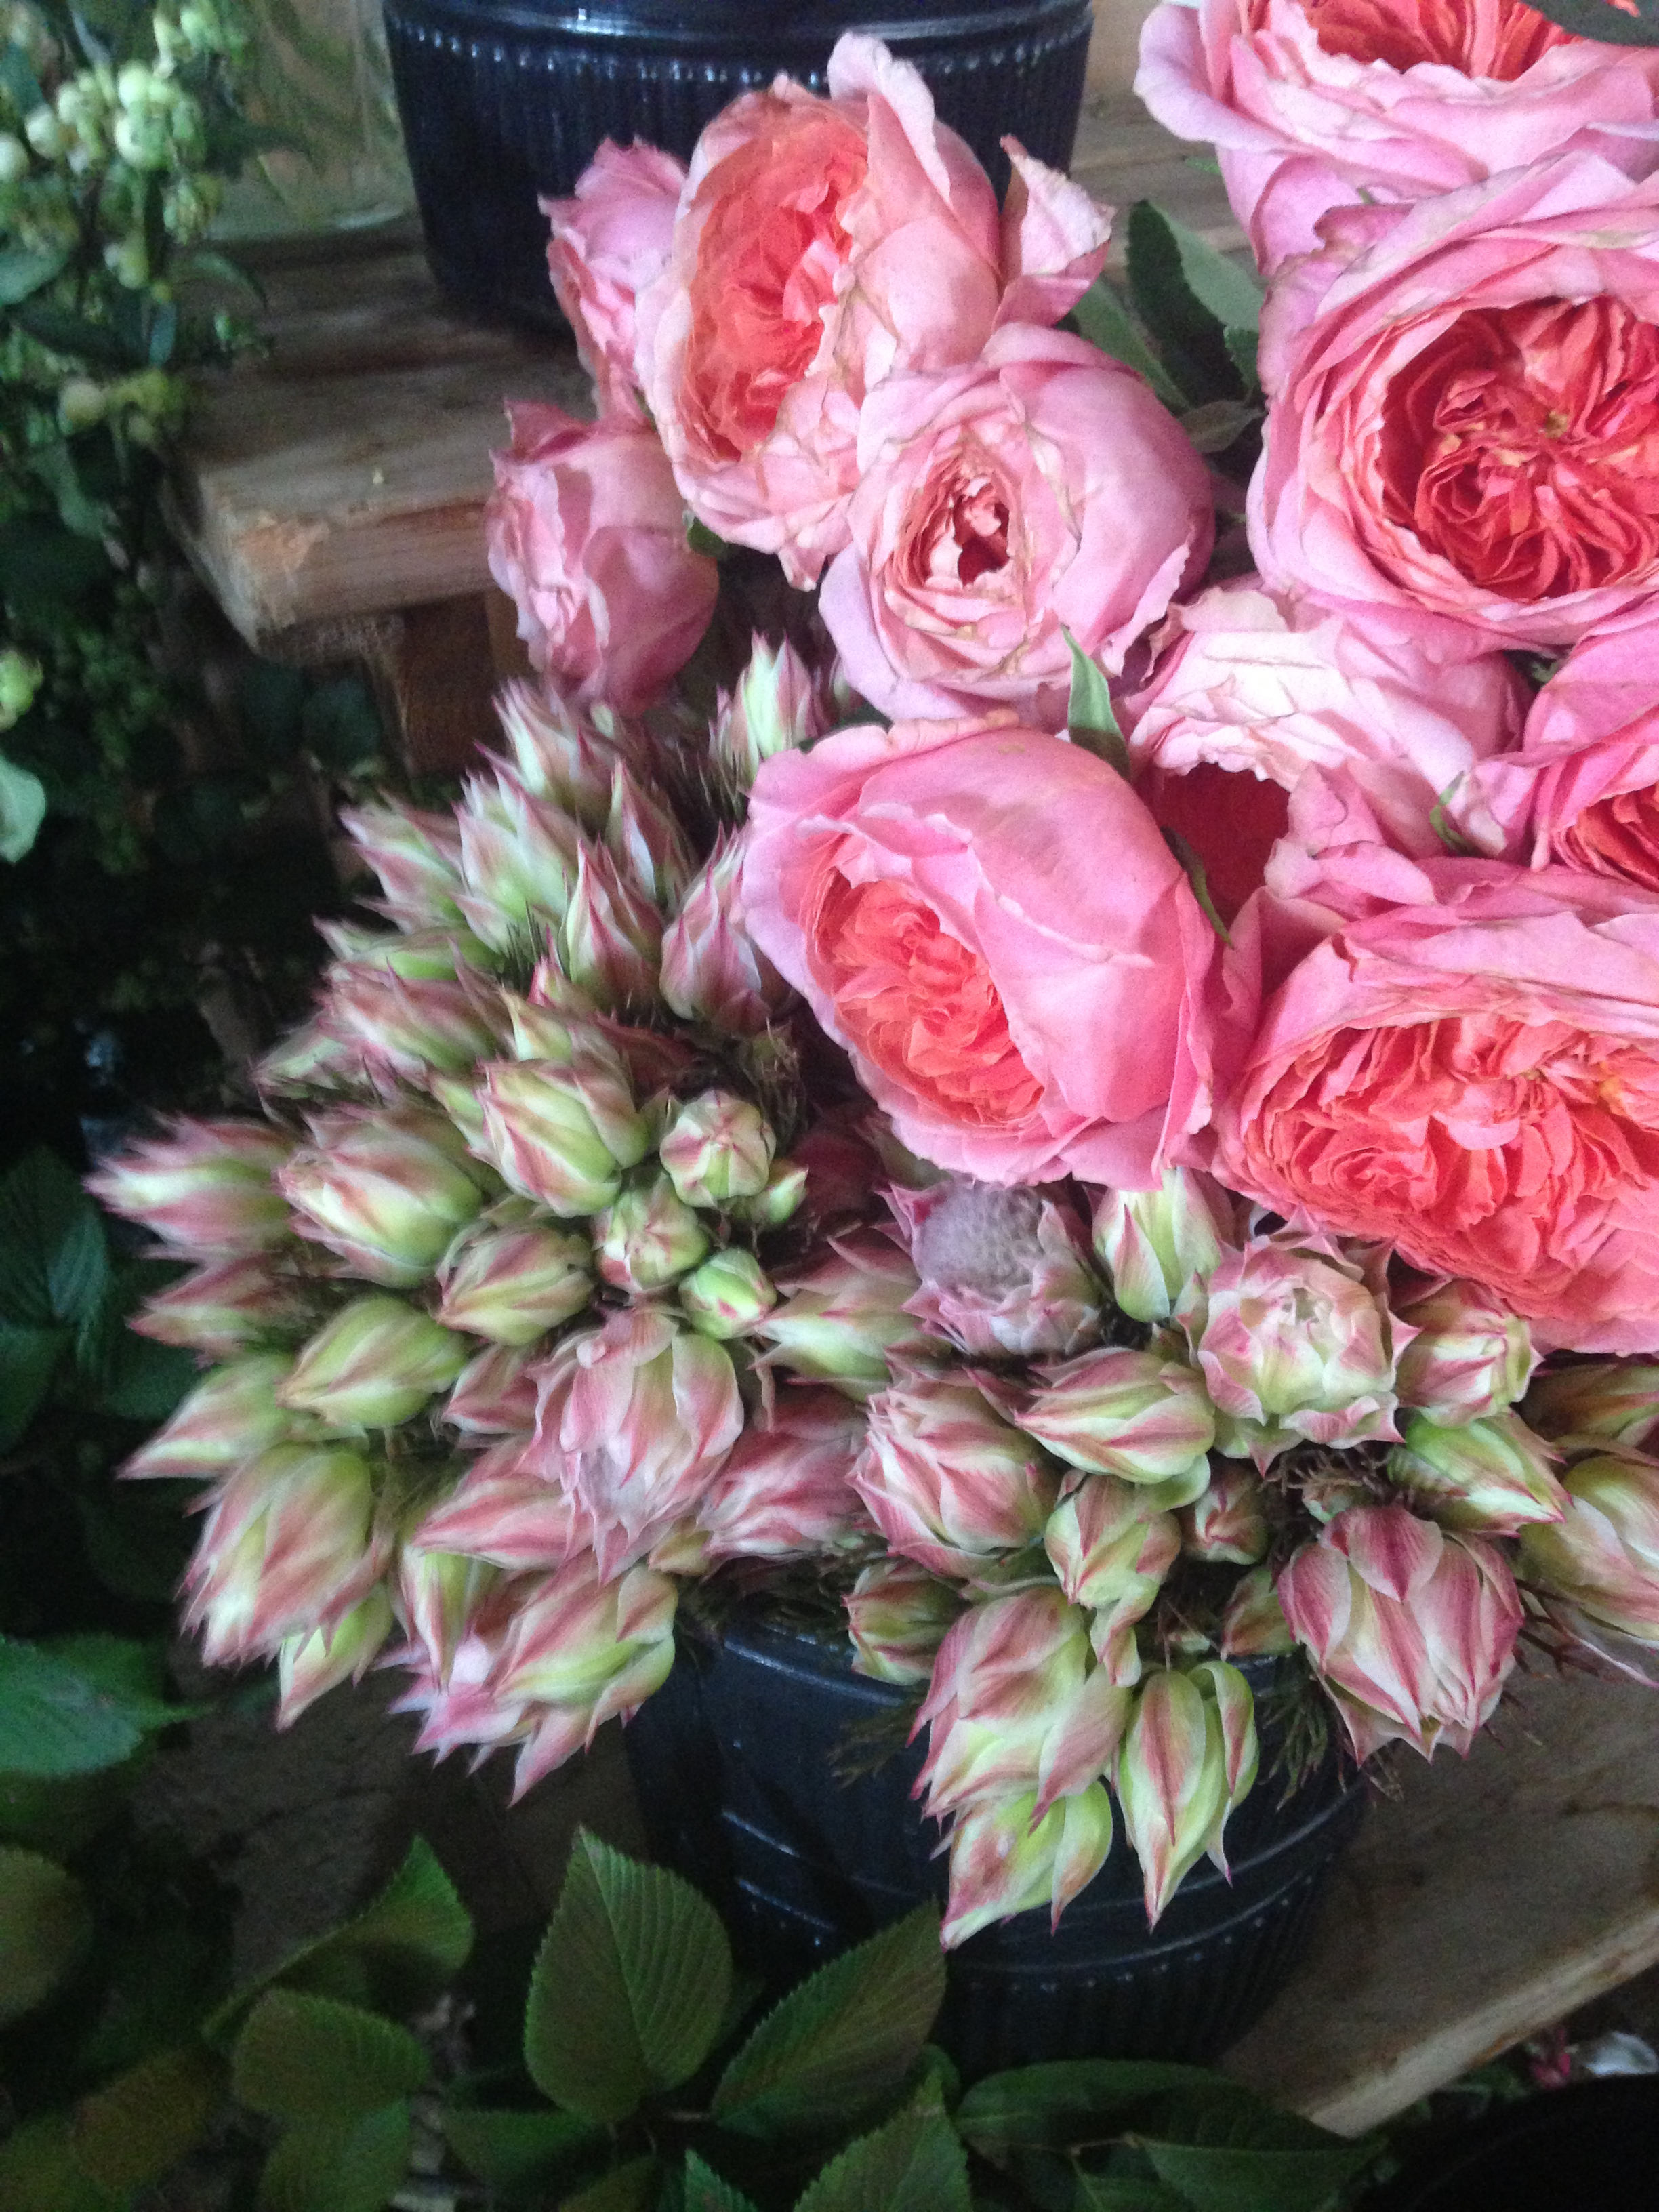 One of my favorite flowers, blushing bride protea on the left and the fan favorite on the right, gorgeous garden roses from California.